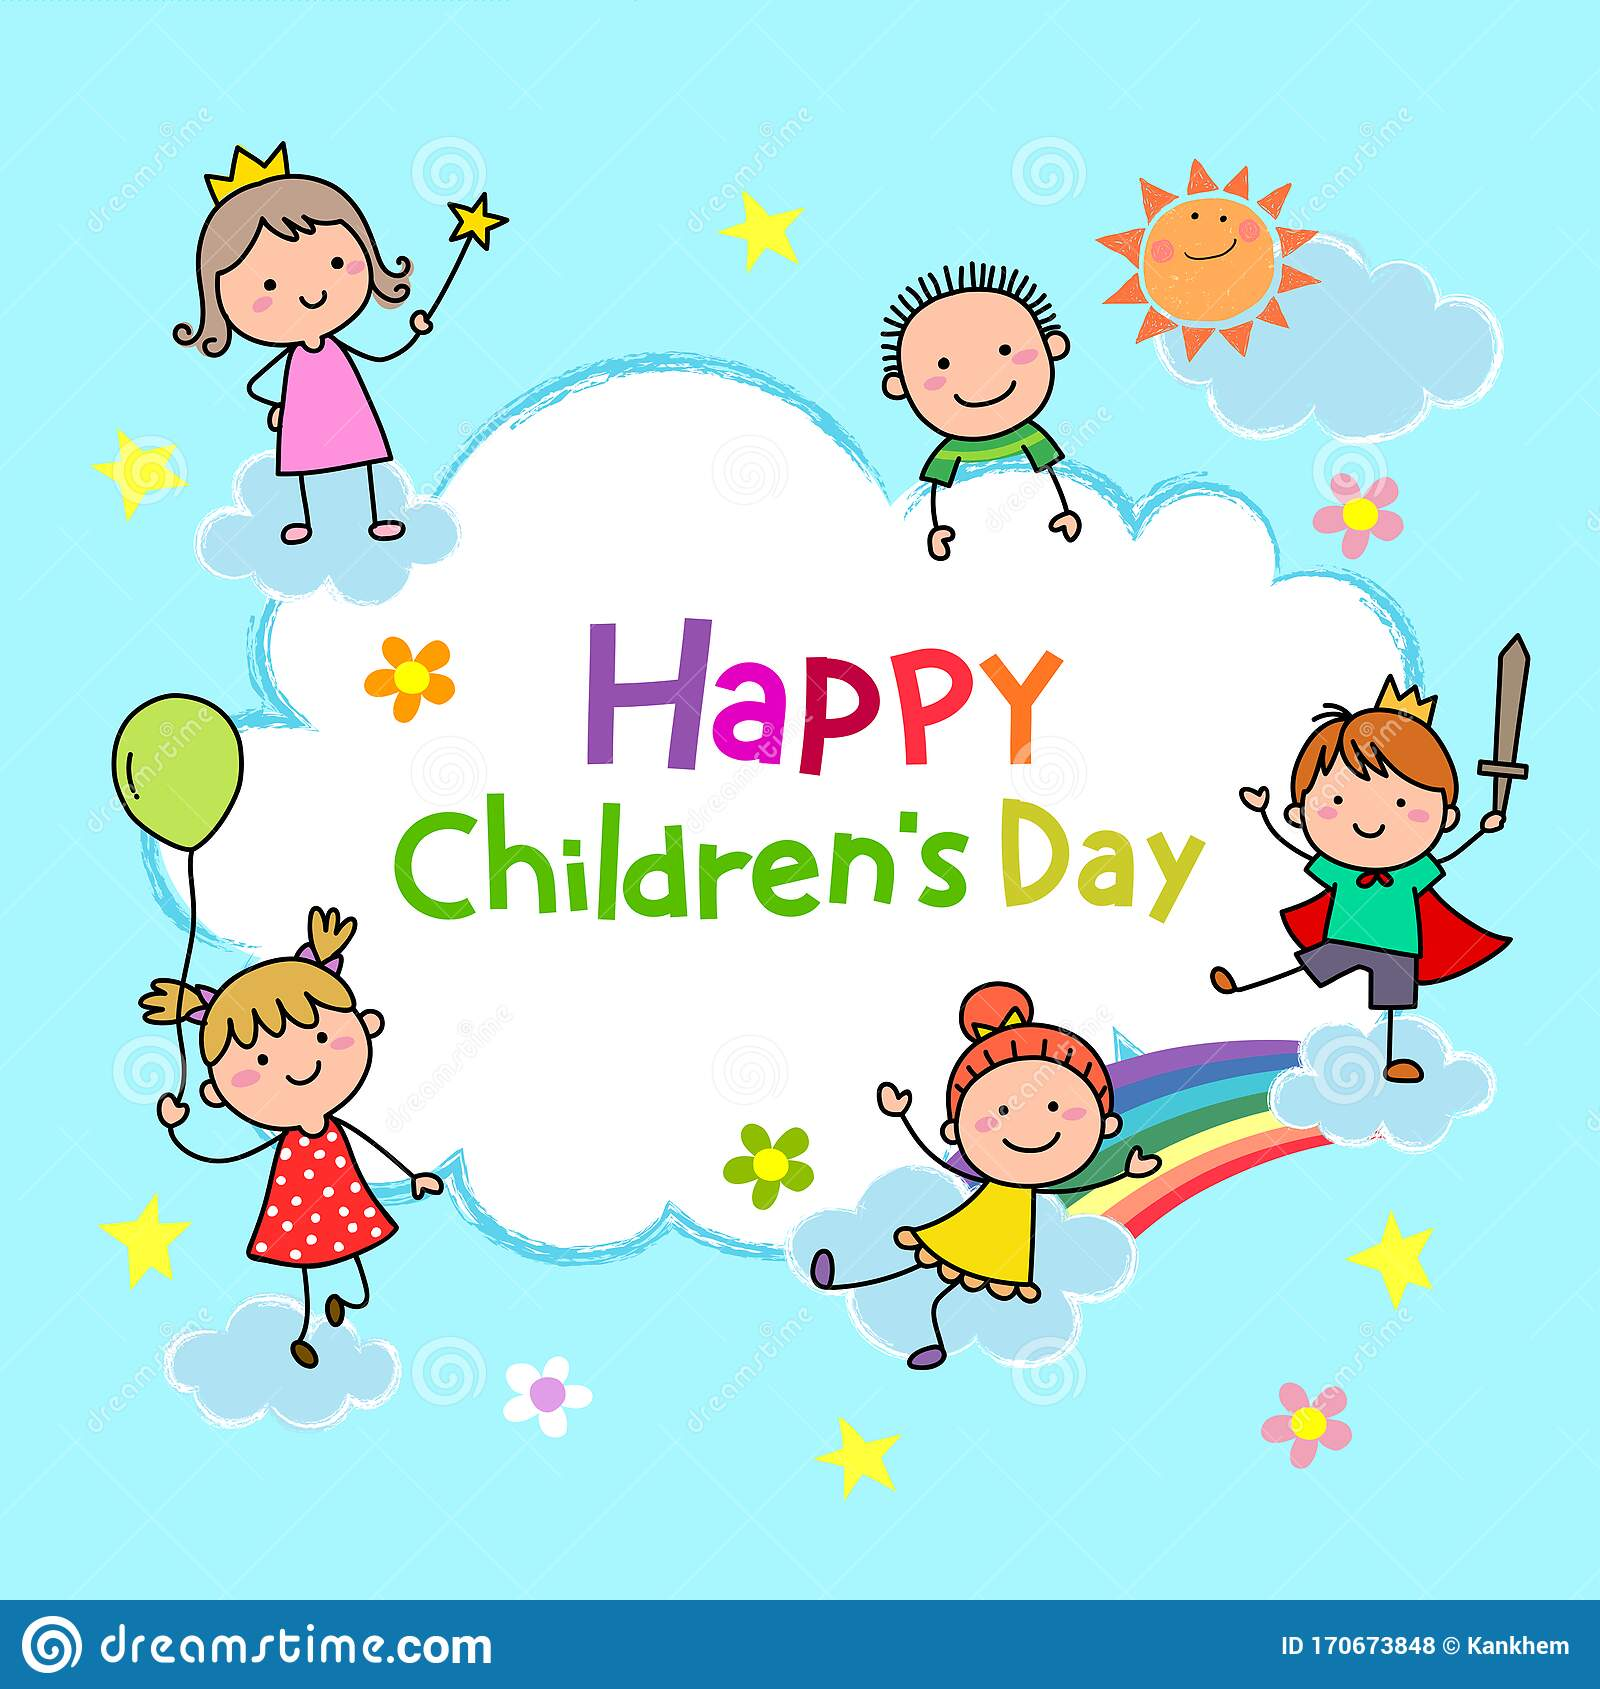 School Children 123 - Happy Children's Day 2017 Quotes - Free Transparent  PNG Clipart Images Download